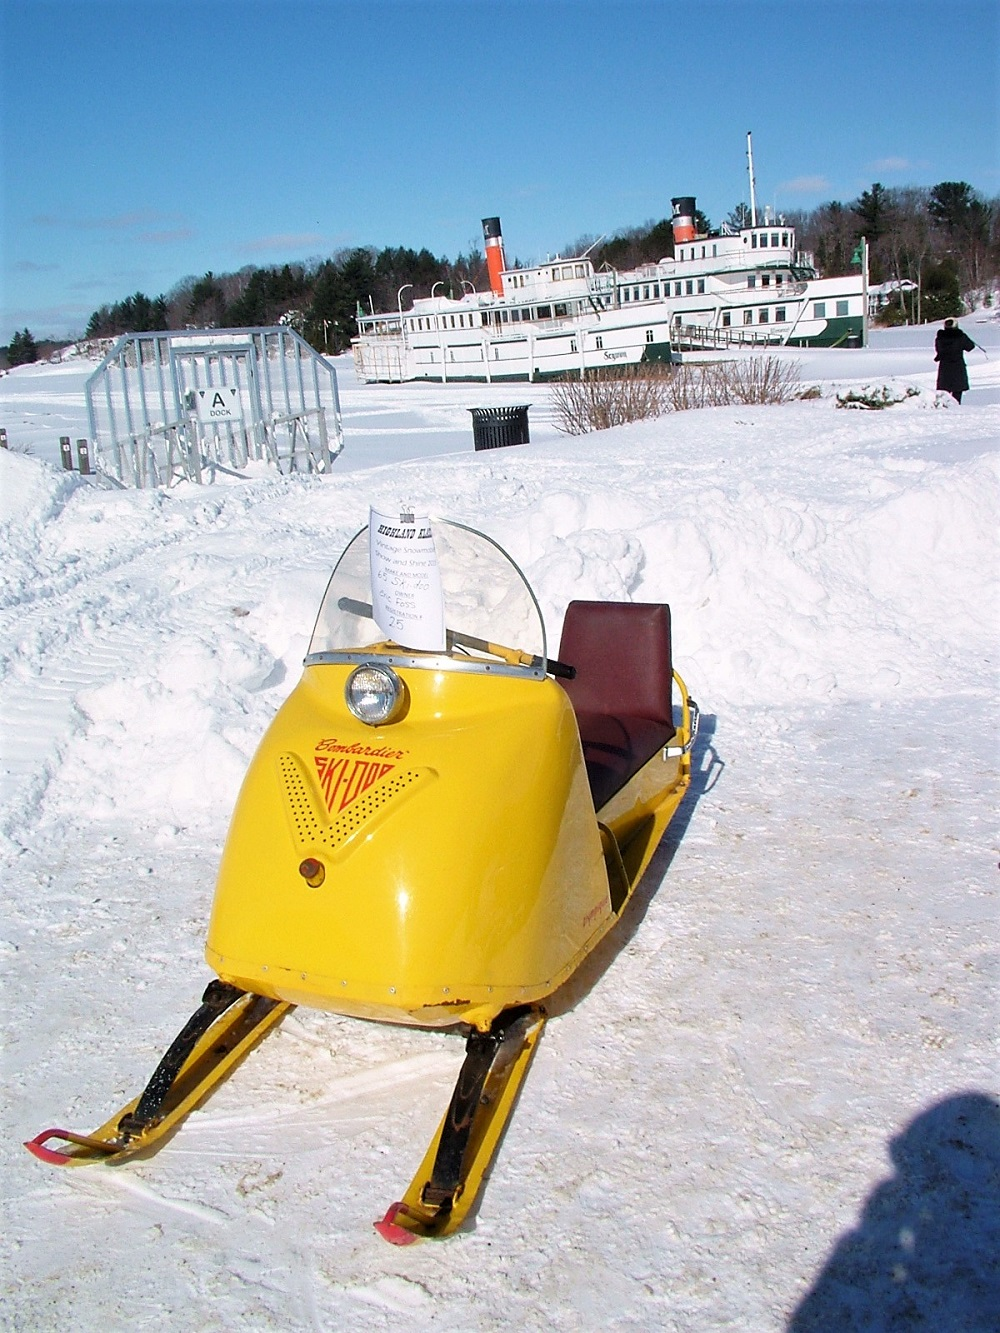 1965 Bombardier Ski-Doo one of vintage snowmobiles at Wharf ...